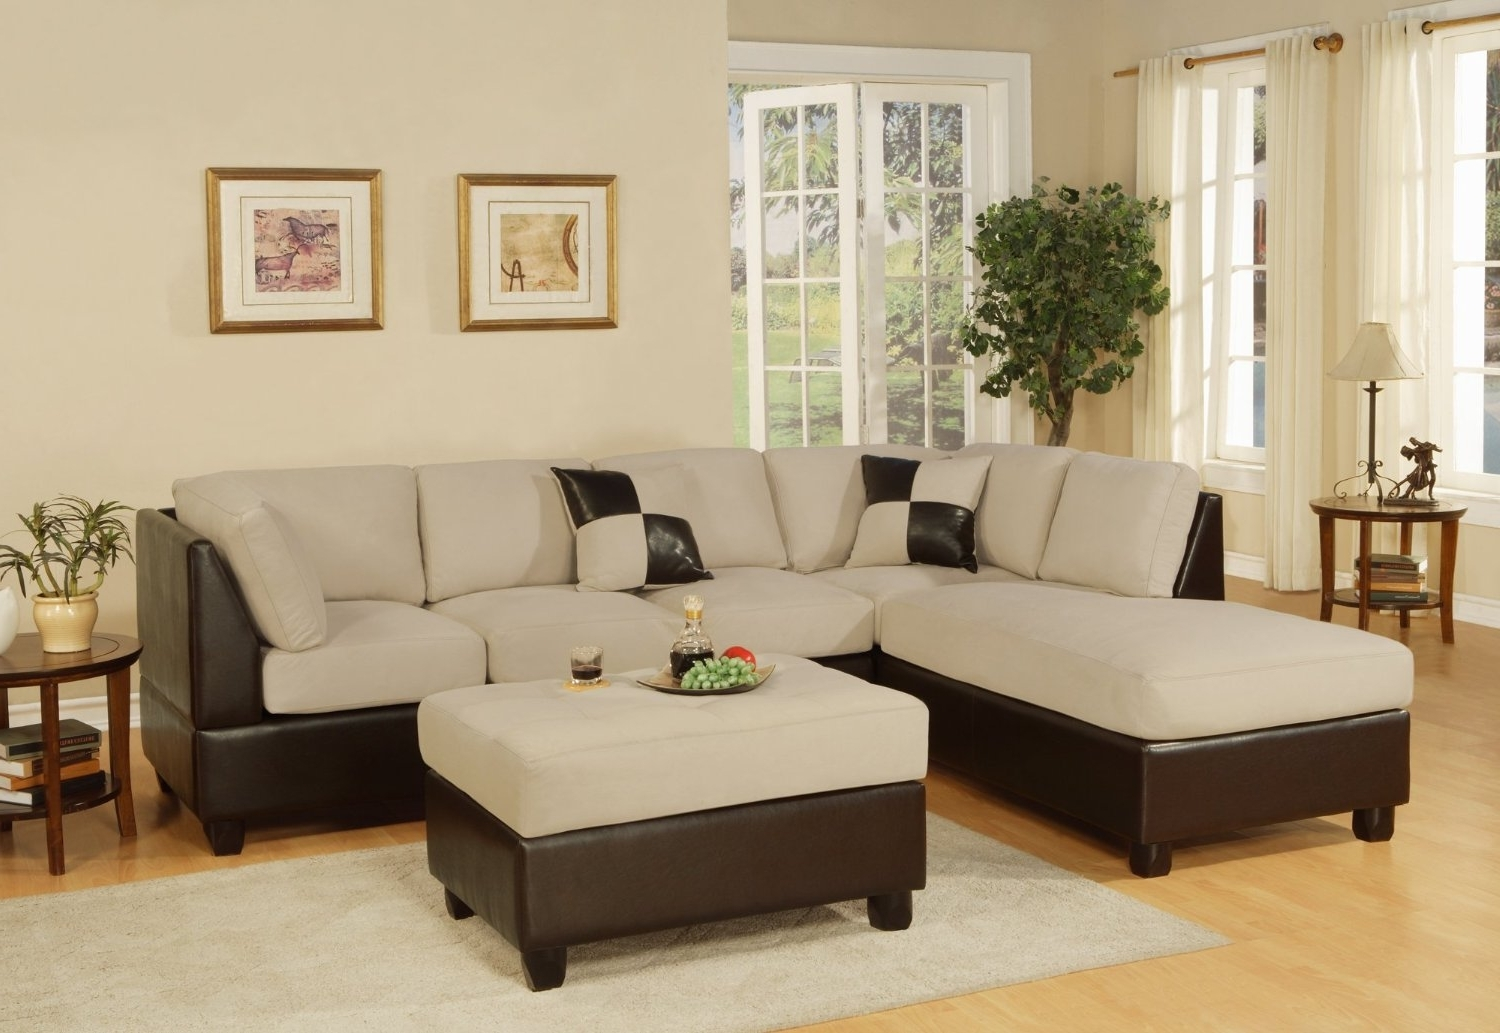 Furniture : Sectional Sofa 80 X 80 Corner Sofa Extension Sectional Pertaining To Latest Hawaii Sectional Sofas (View 5 of 15)